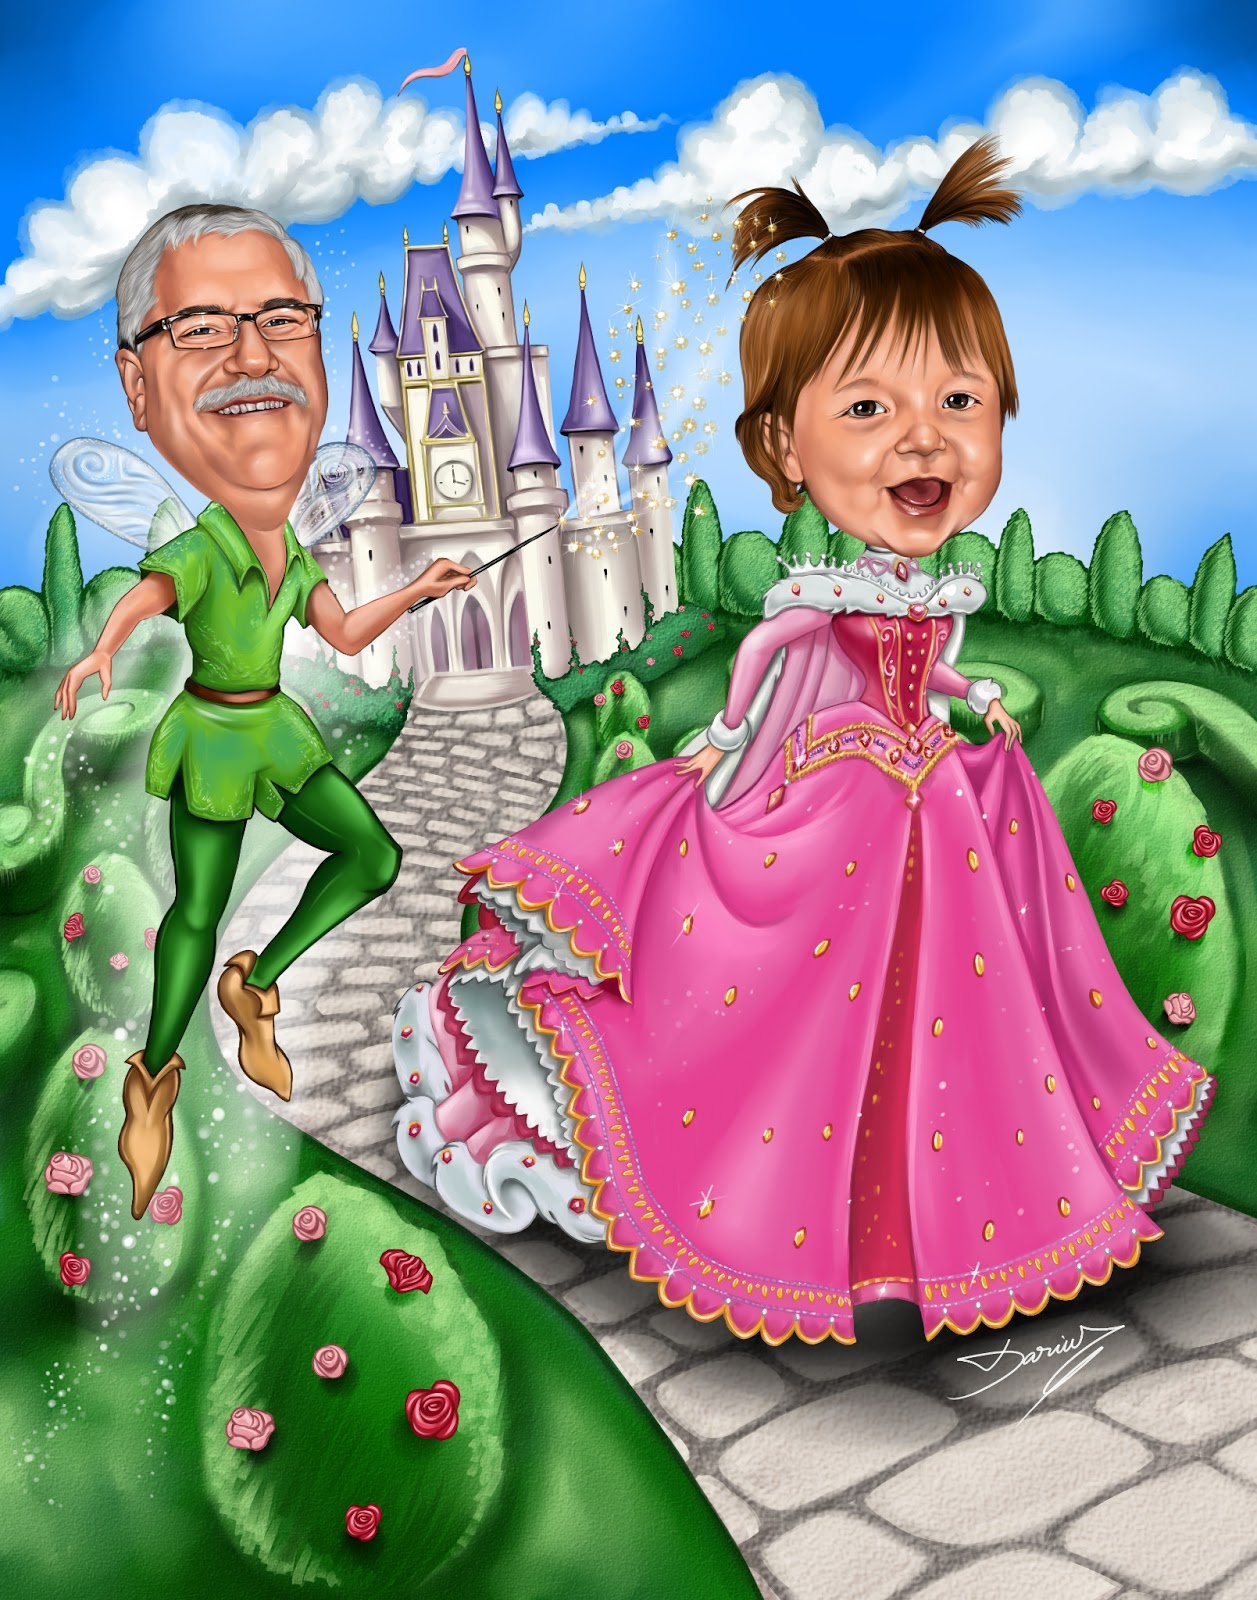 Fairytale Caricature Princess